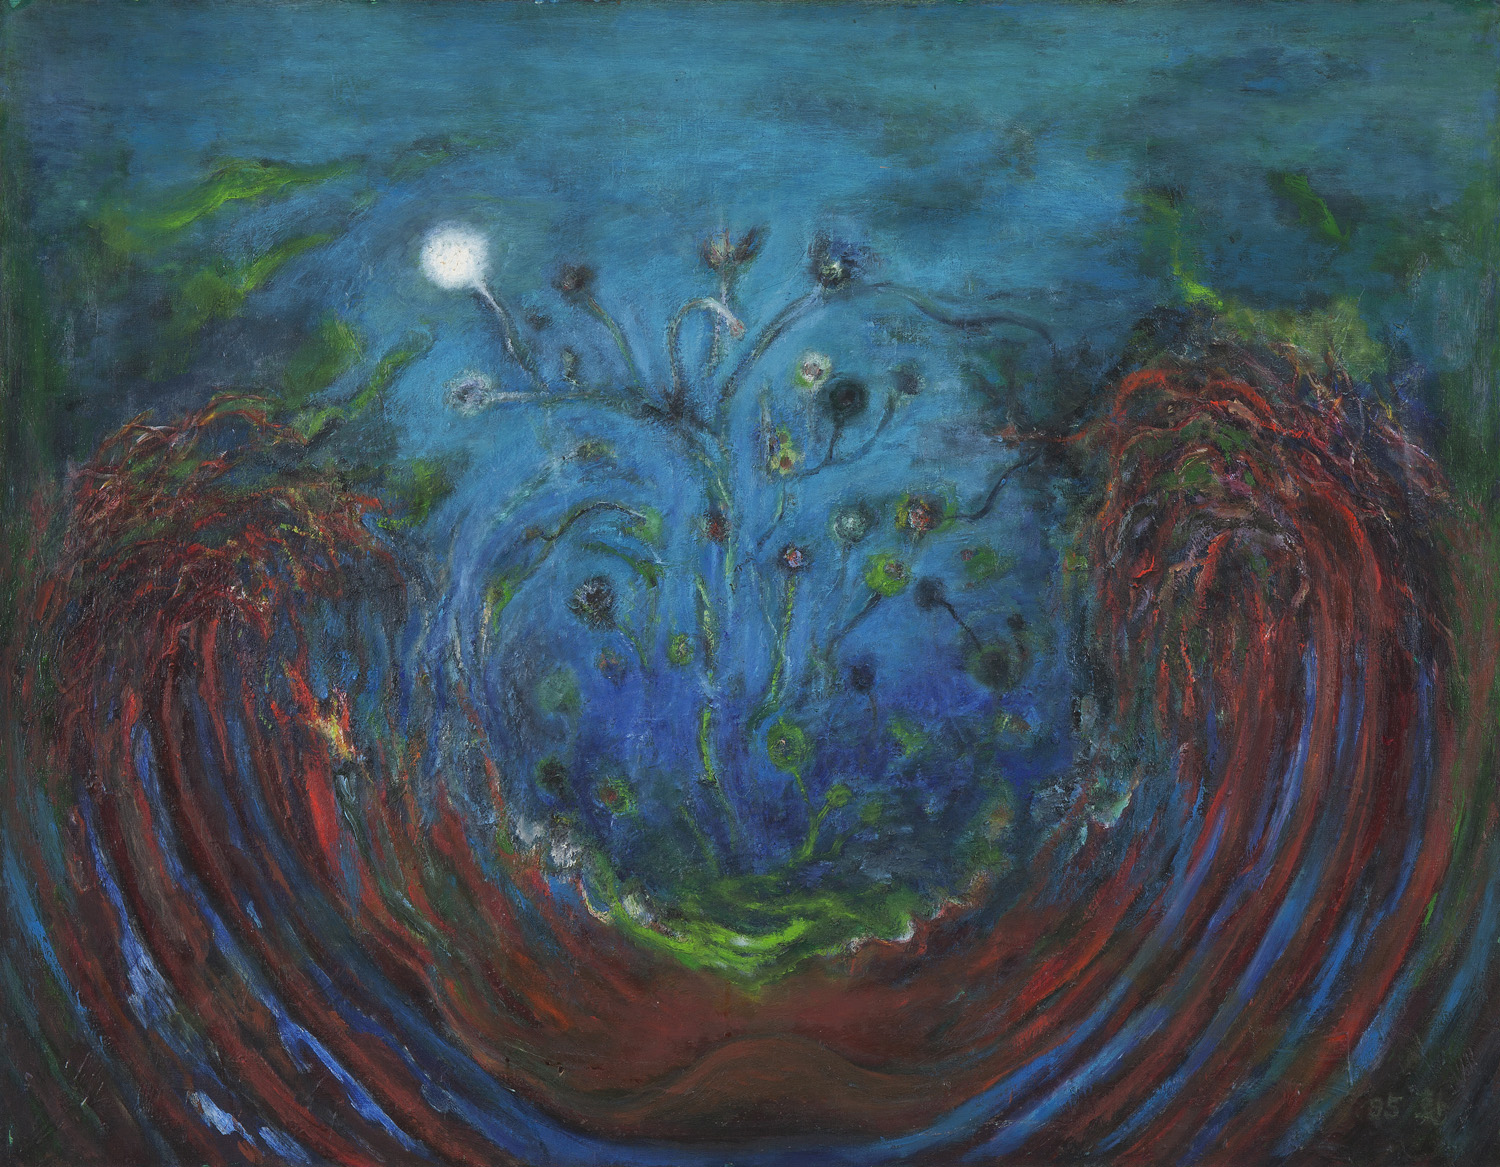 White Flower, 1994, Oil on canvas, 90.5x116.5cm